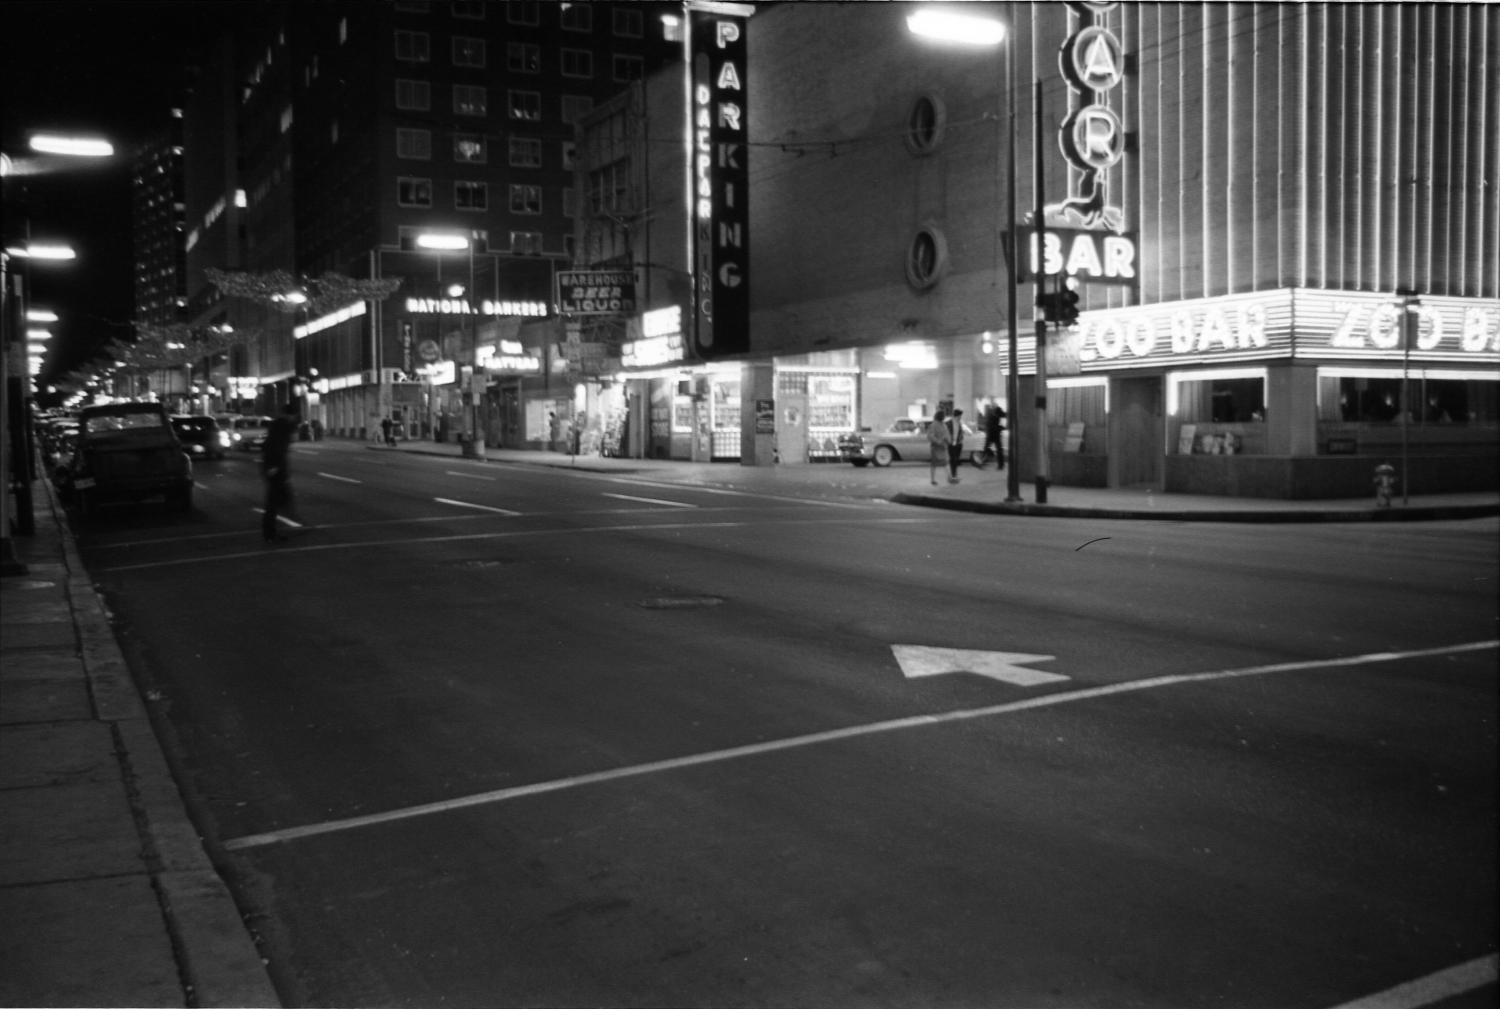 [Commerce Street in downtown Dallas the evening of November 22, 1963]                                                                                                      [Sequence #]: 1 of 1